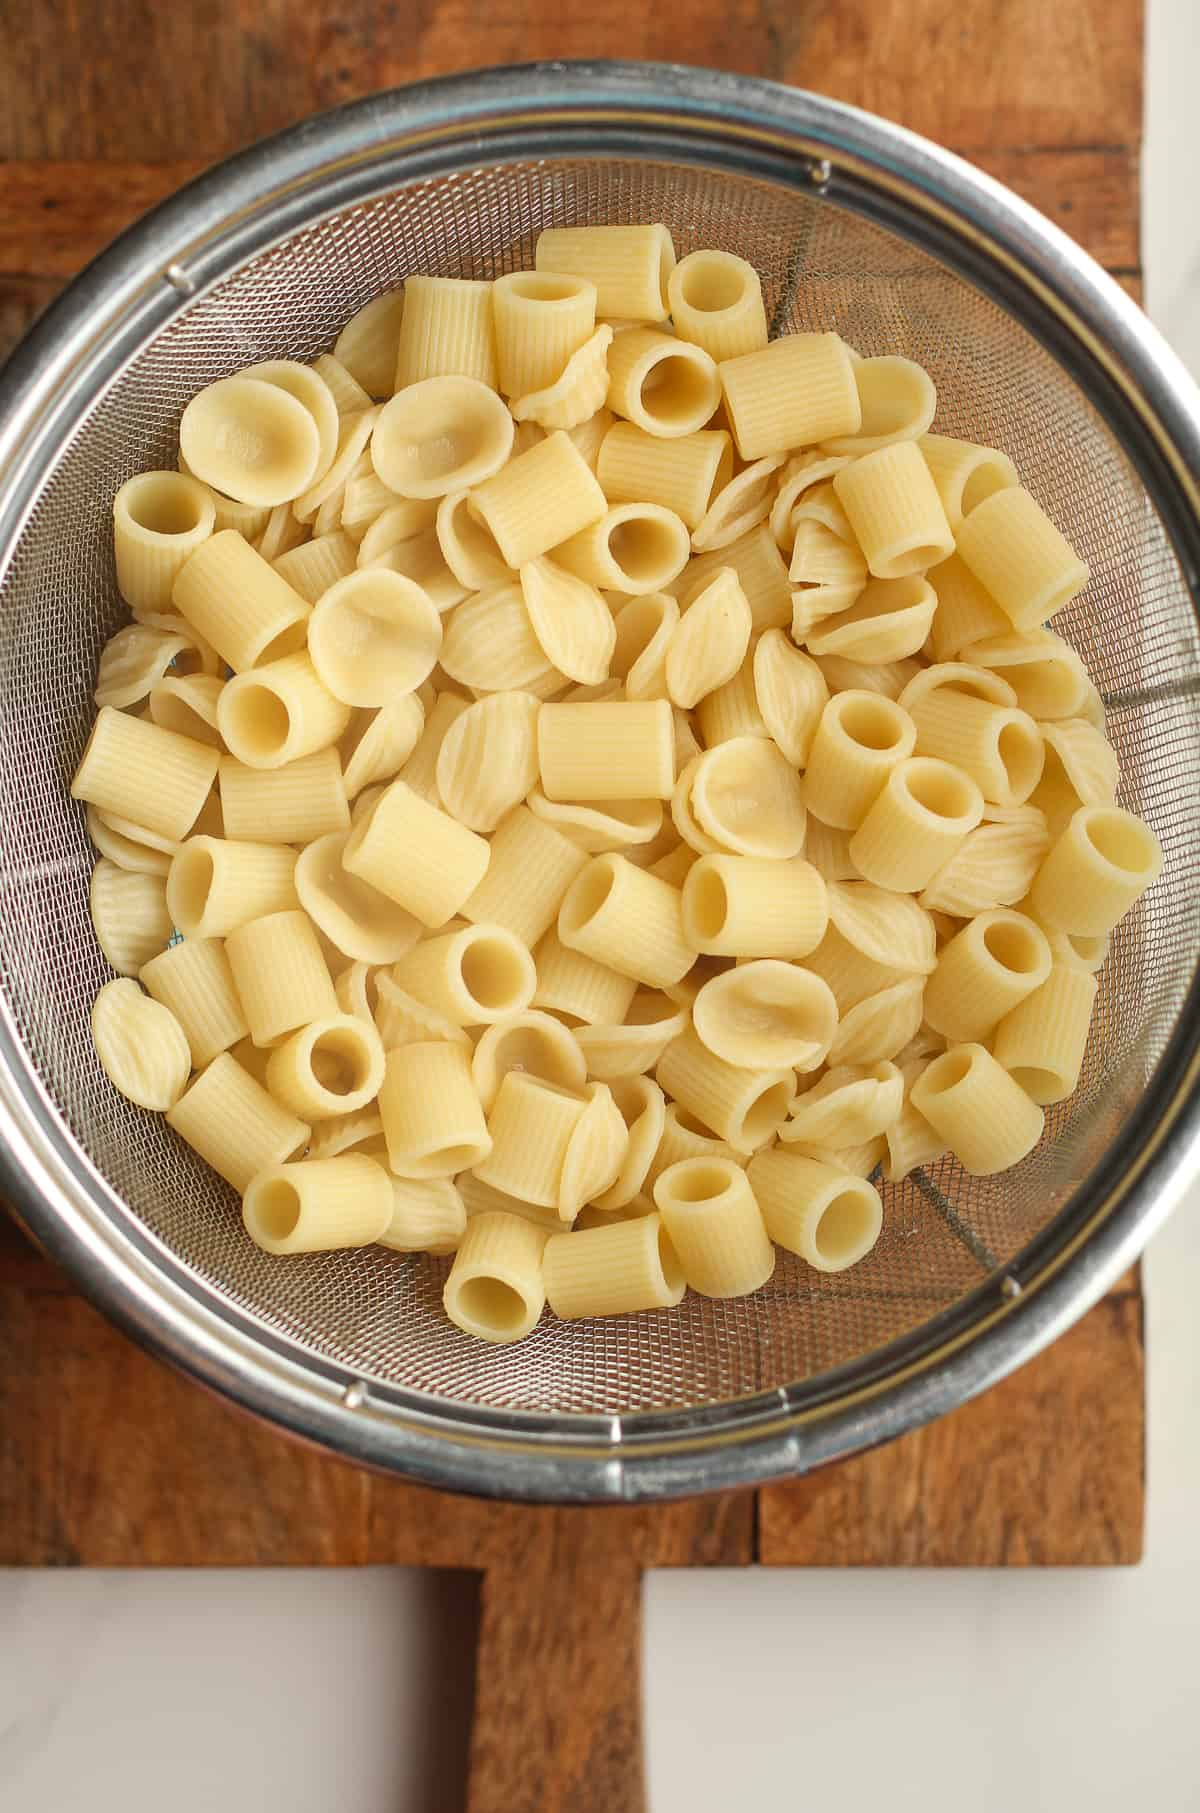 A strainer of cooked pasta.